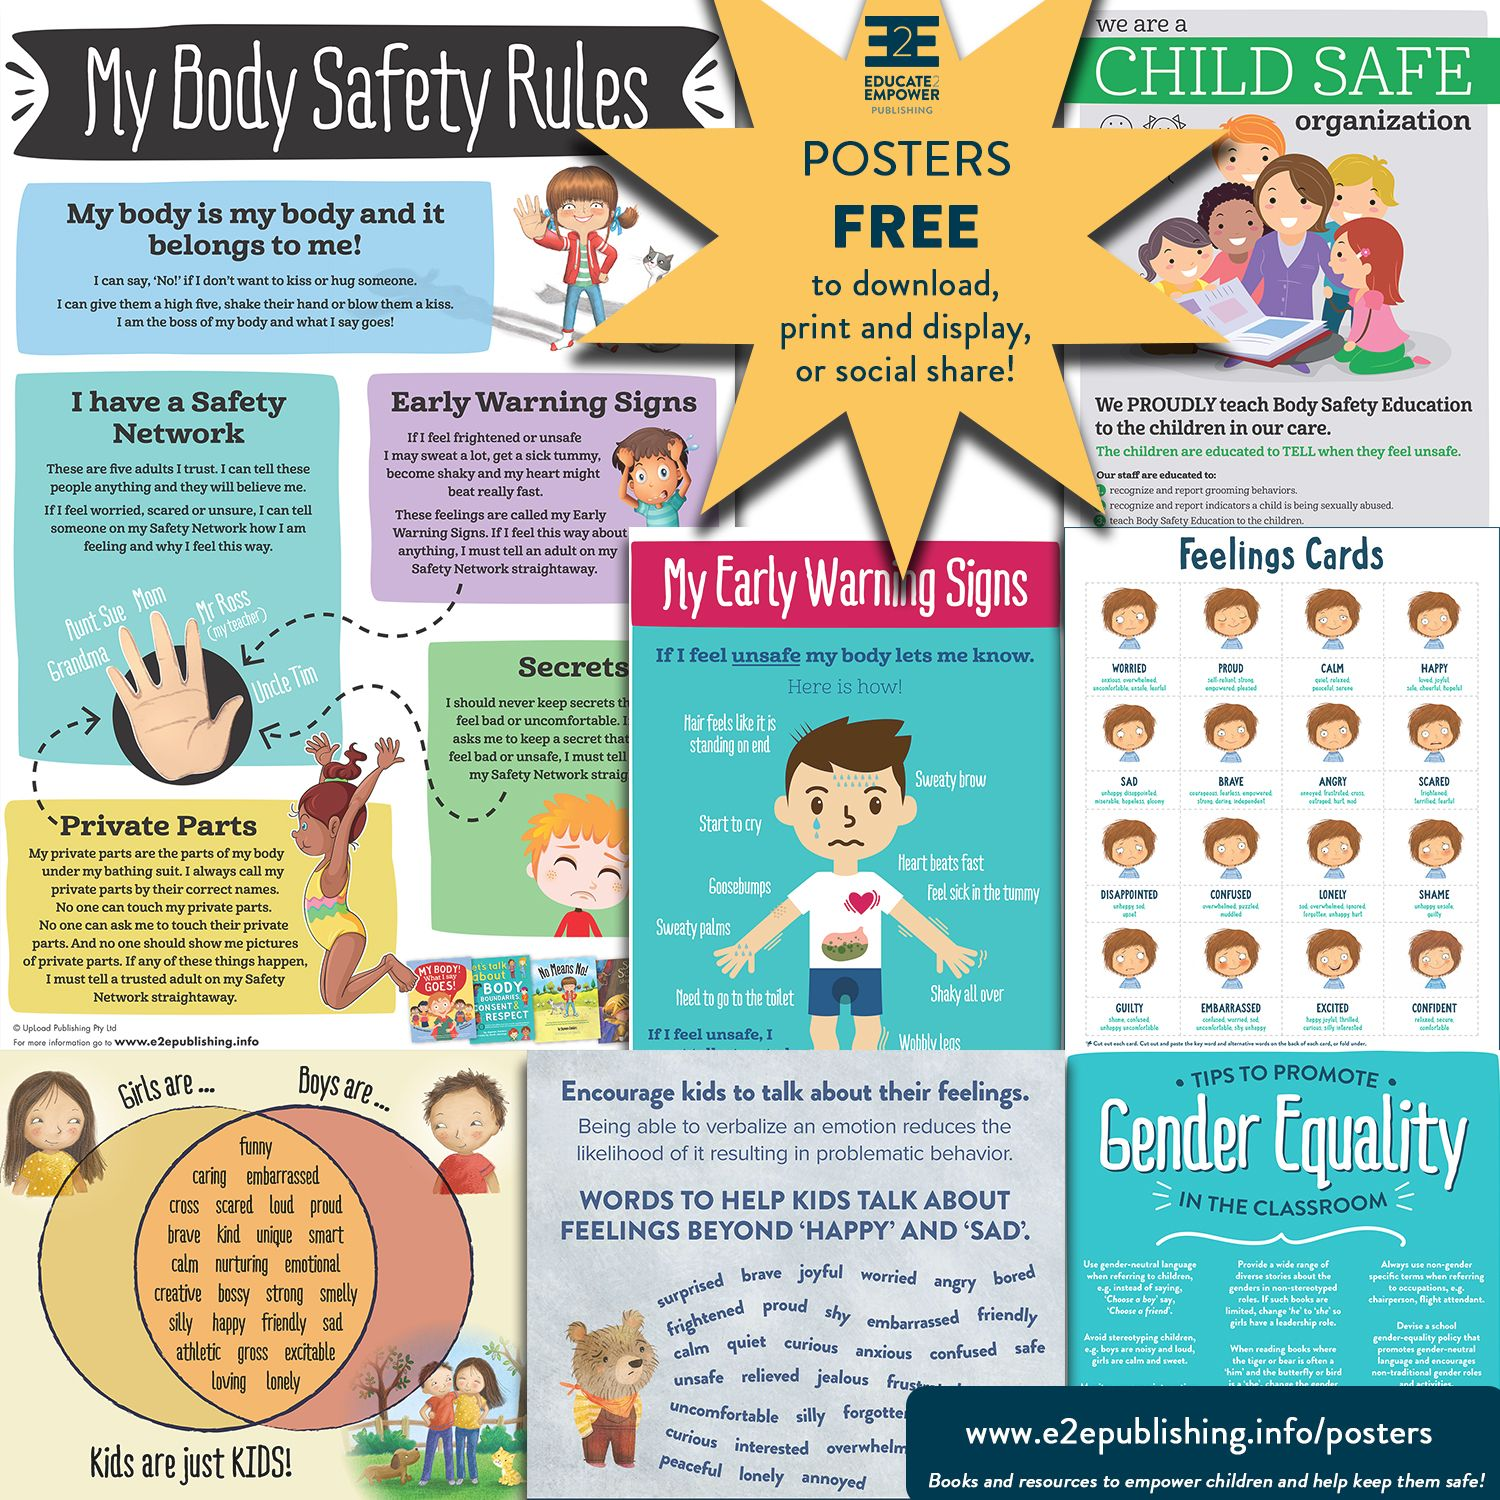 Posters to help you teach Body Safety, Gender Equality